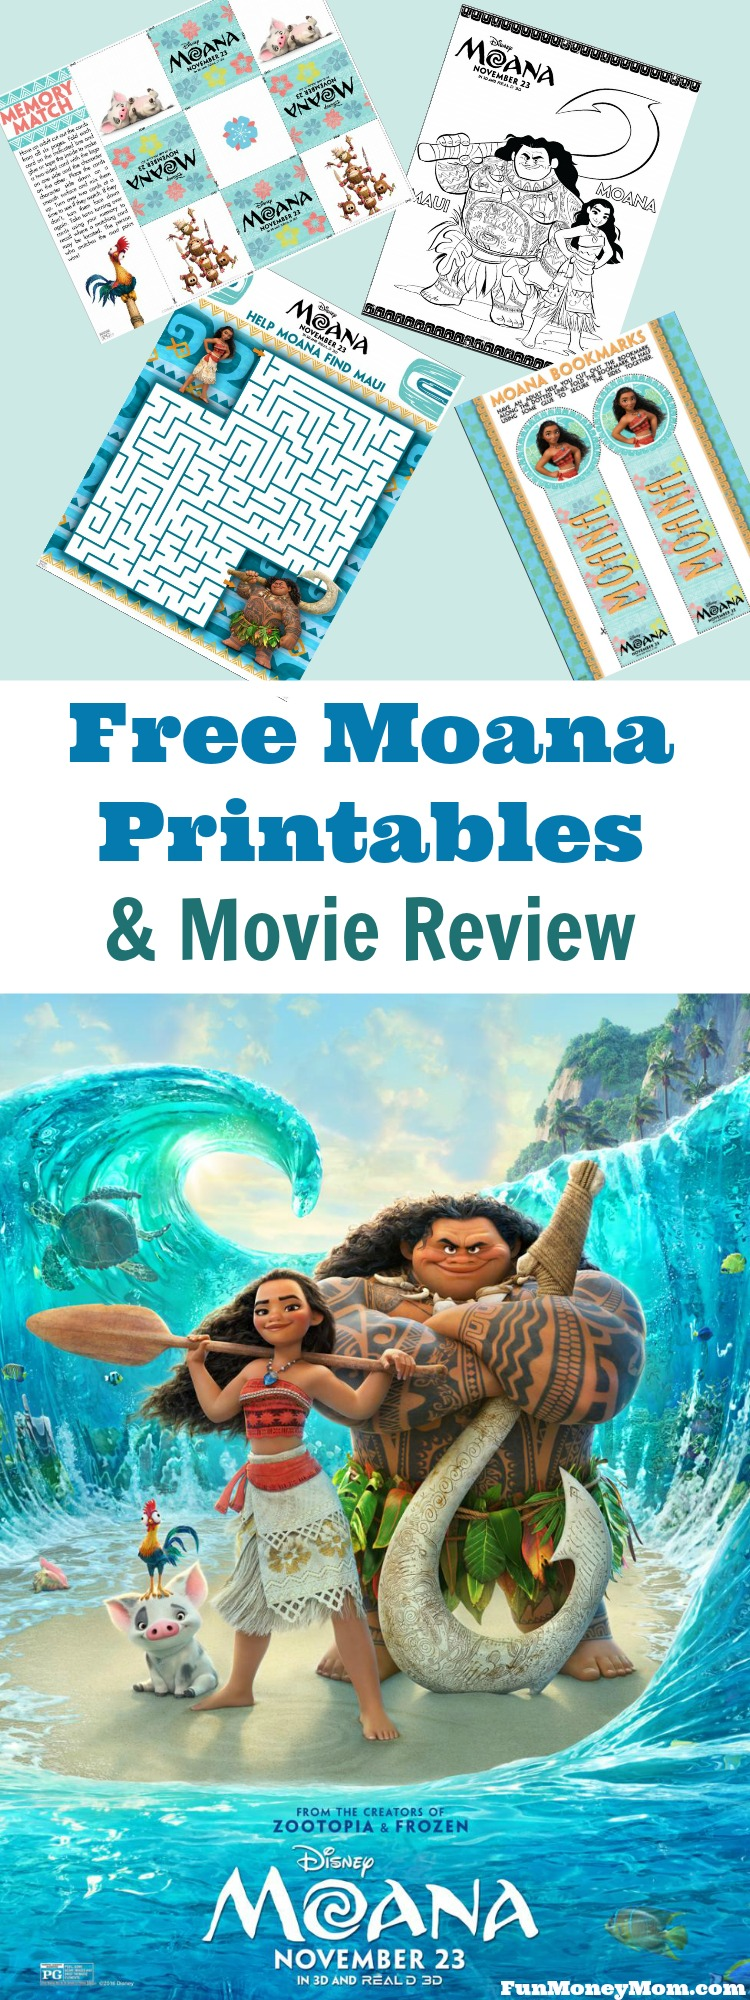 Did your kids love the Moana movie? If so, they're really going to love these free Moana printables and games!